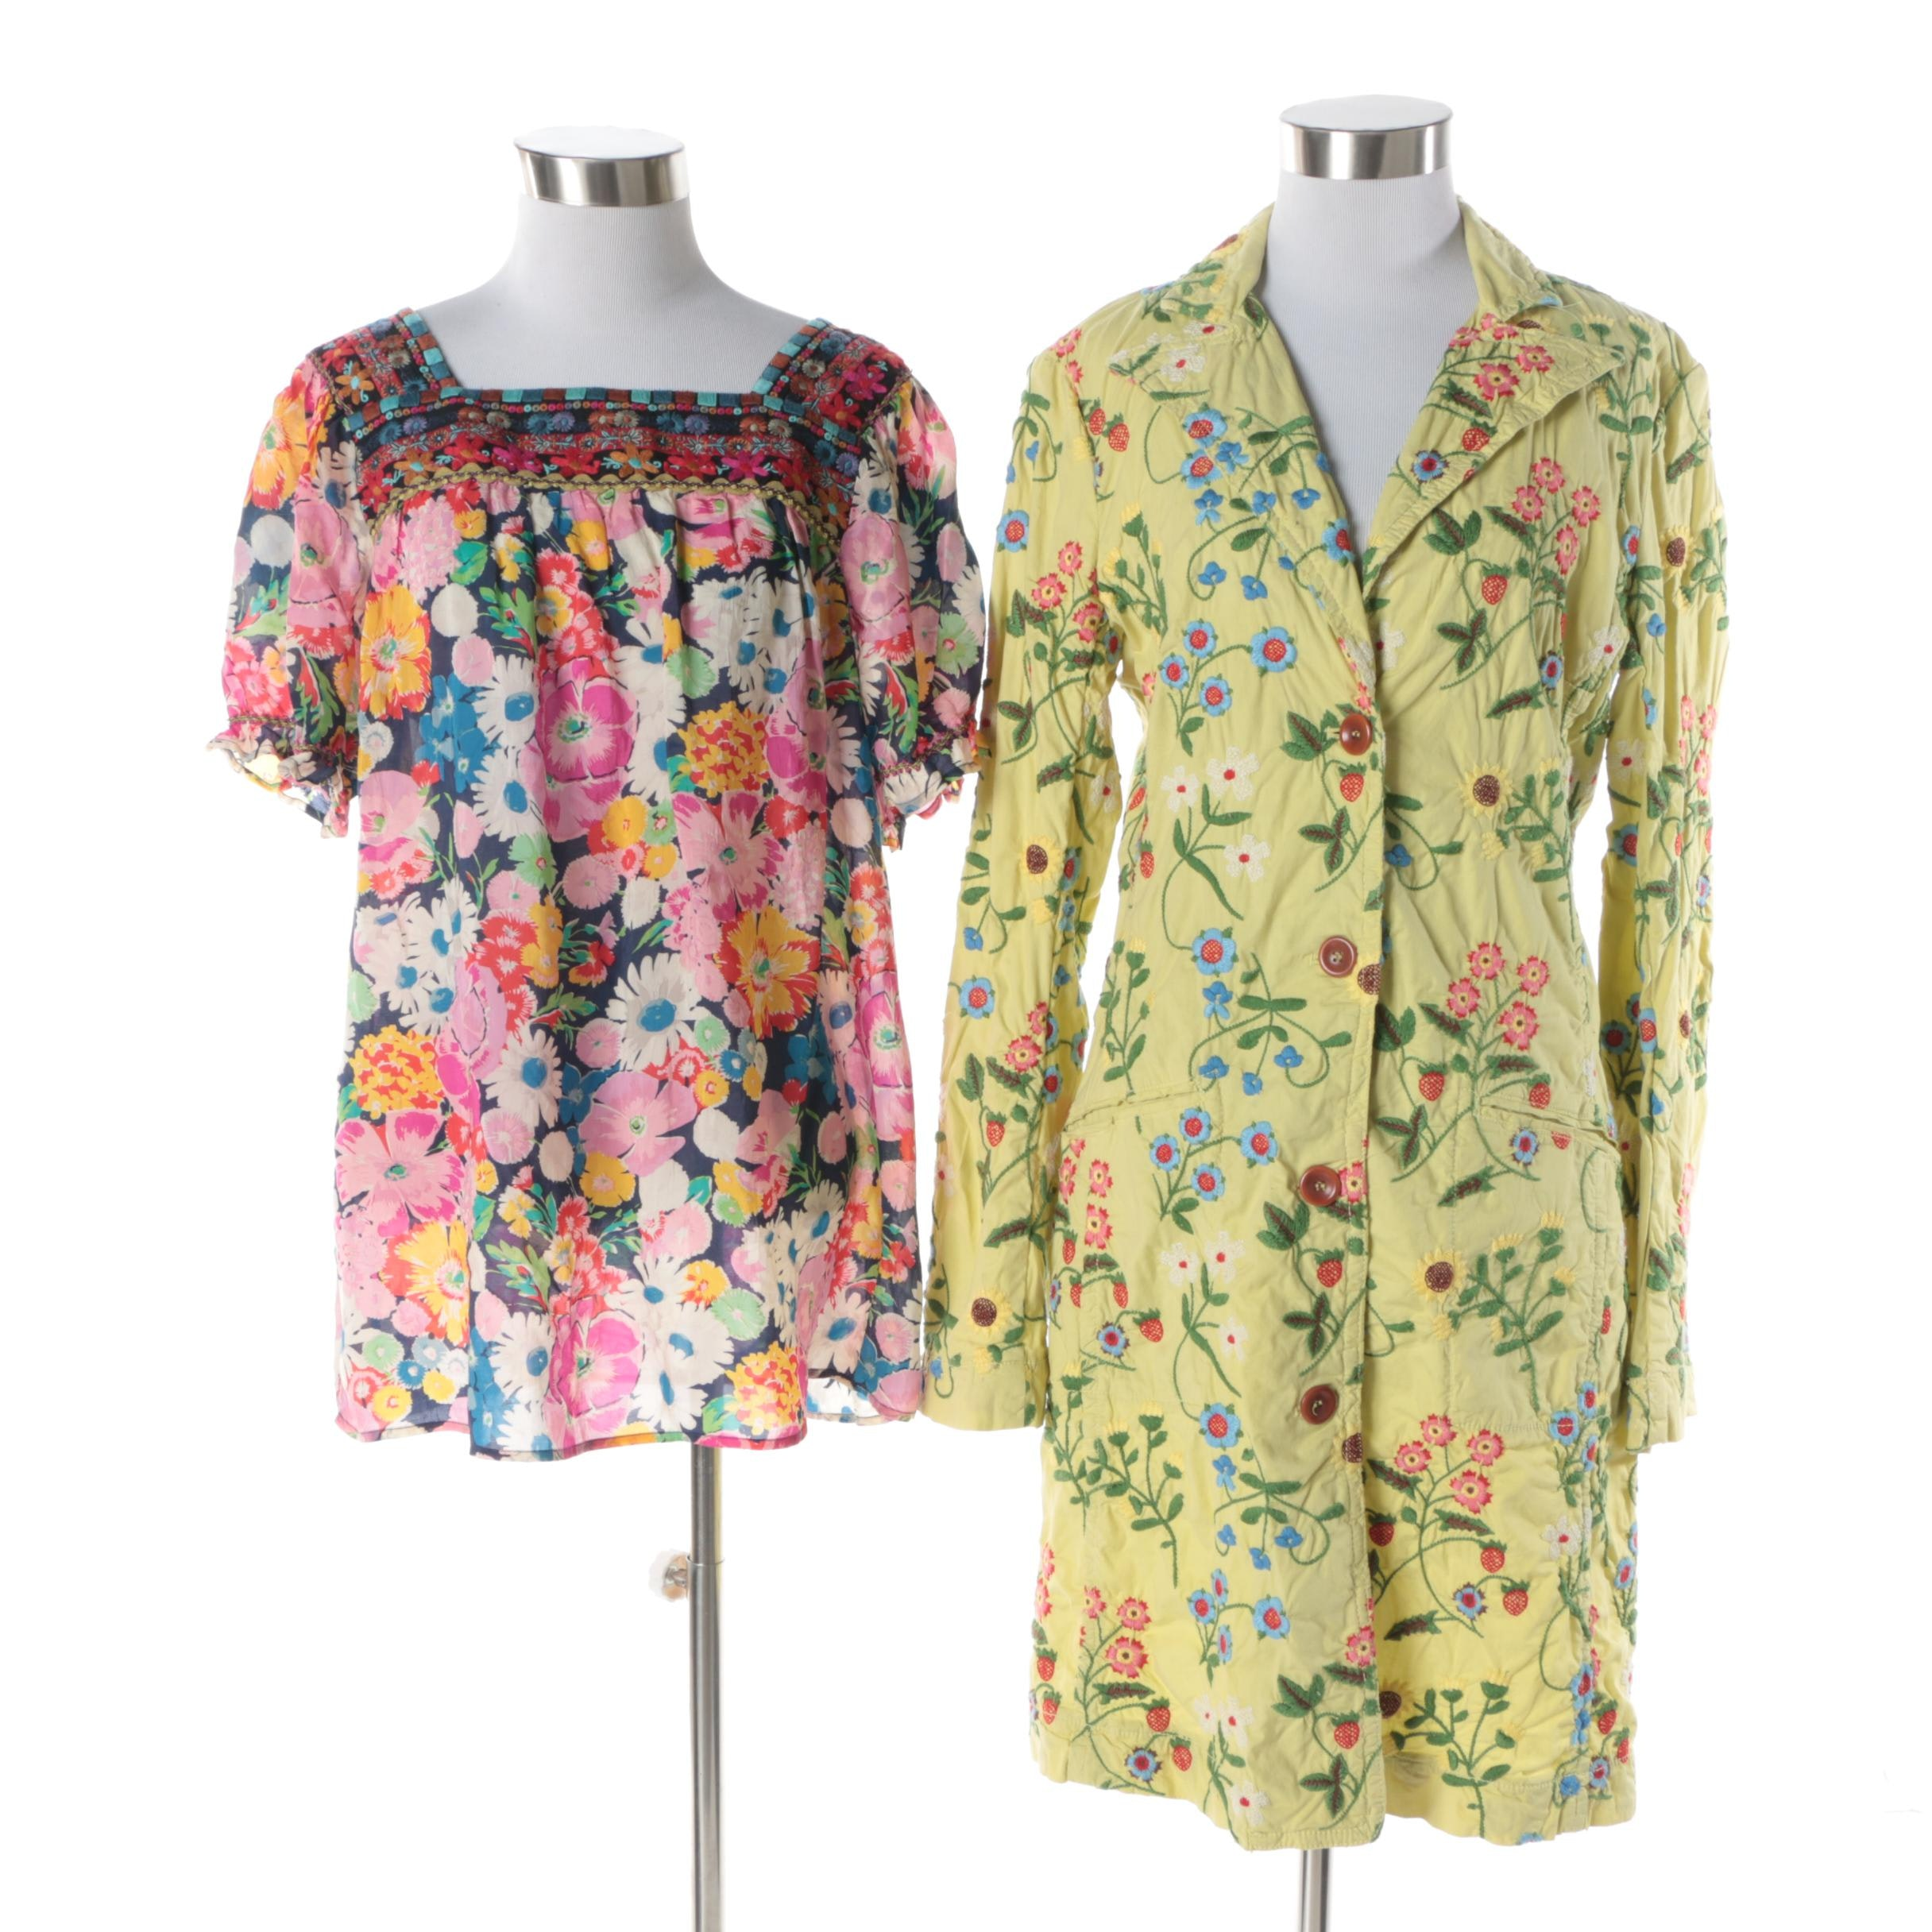 Women's Johnny Was Floral Embroidered Cotton Jacket and Tunic